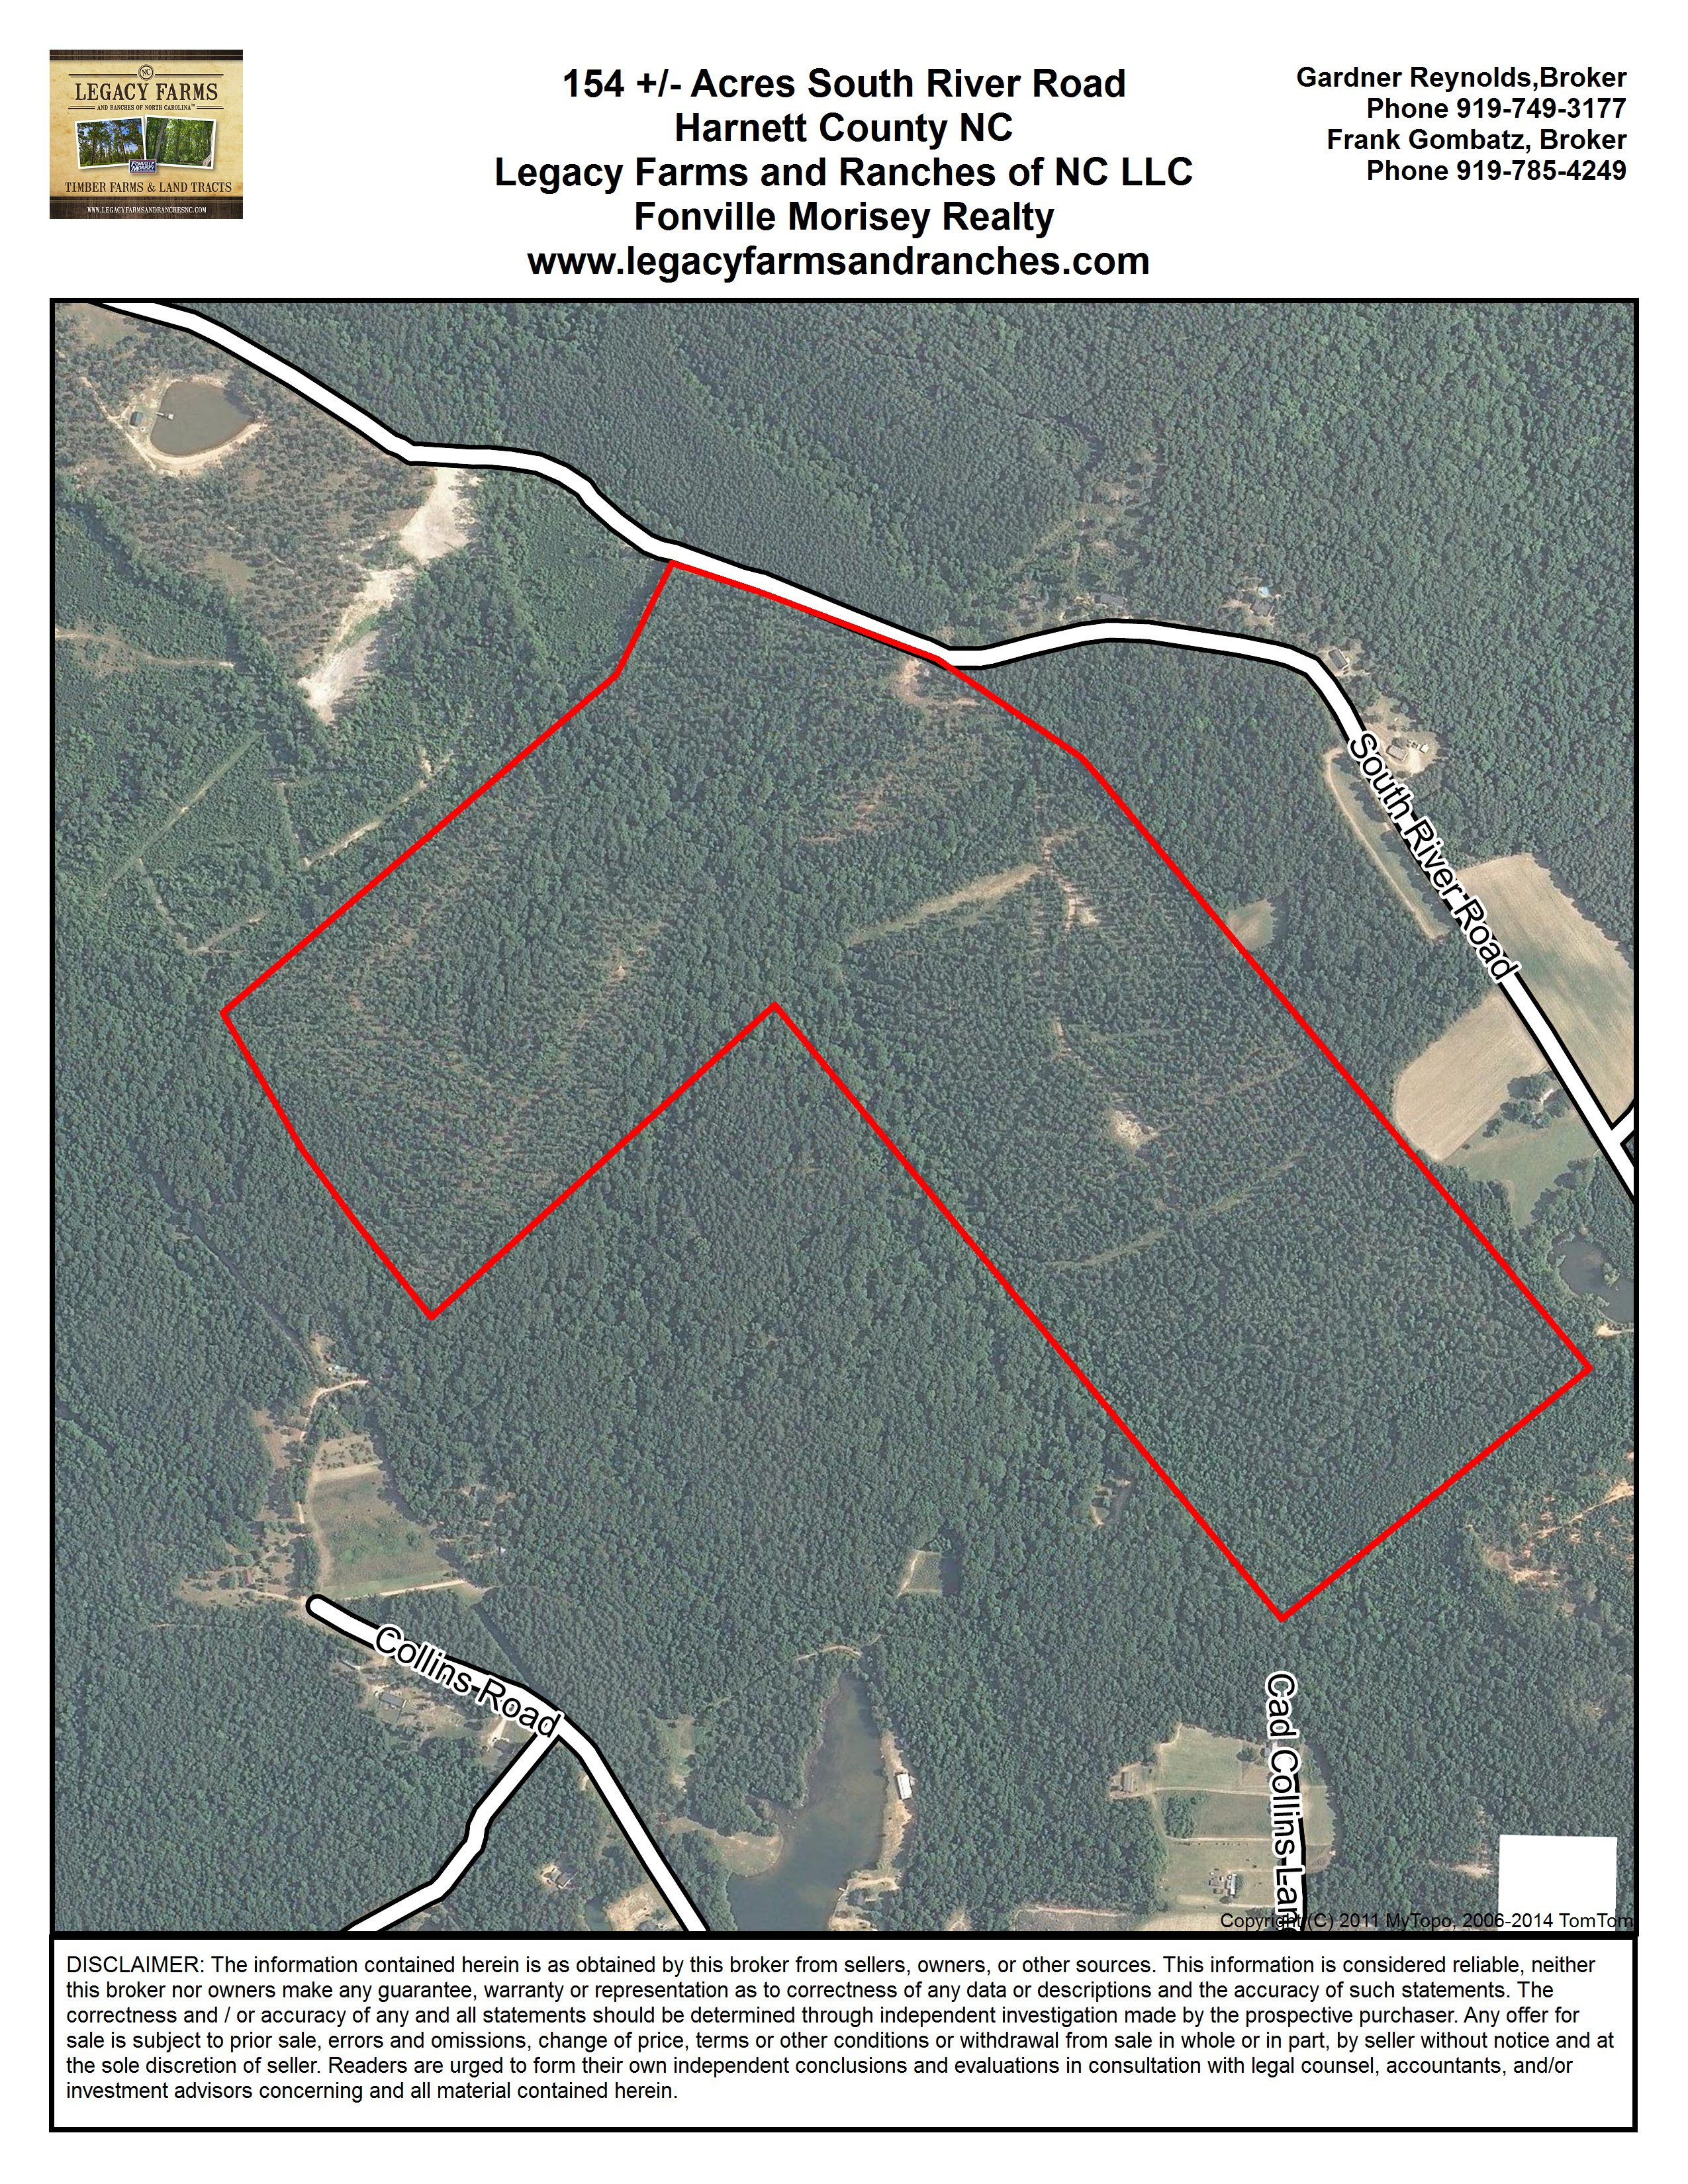 Sand For Sale >> 154 Acres on South River Road near Lillington in Harnett County NC for sale